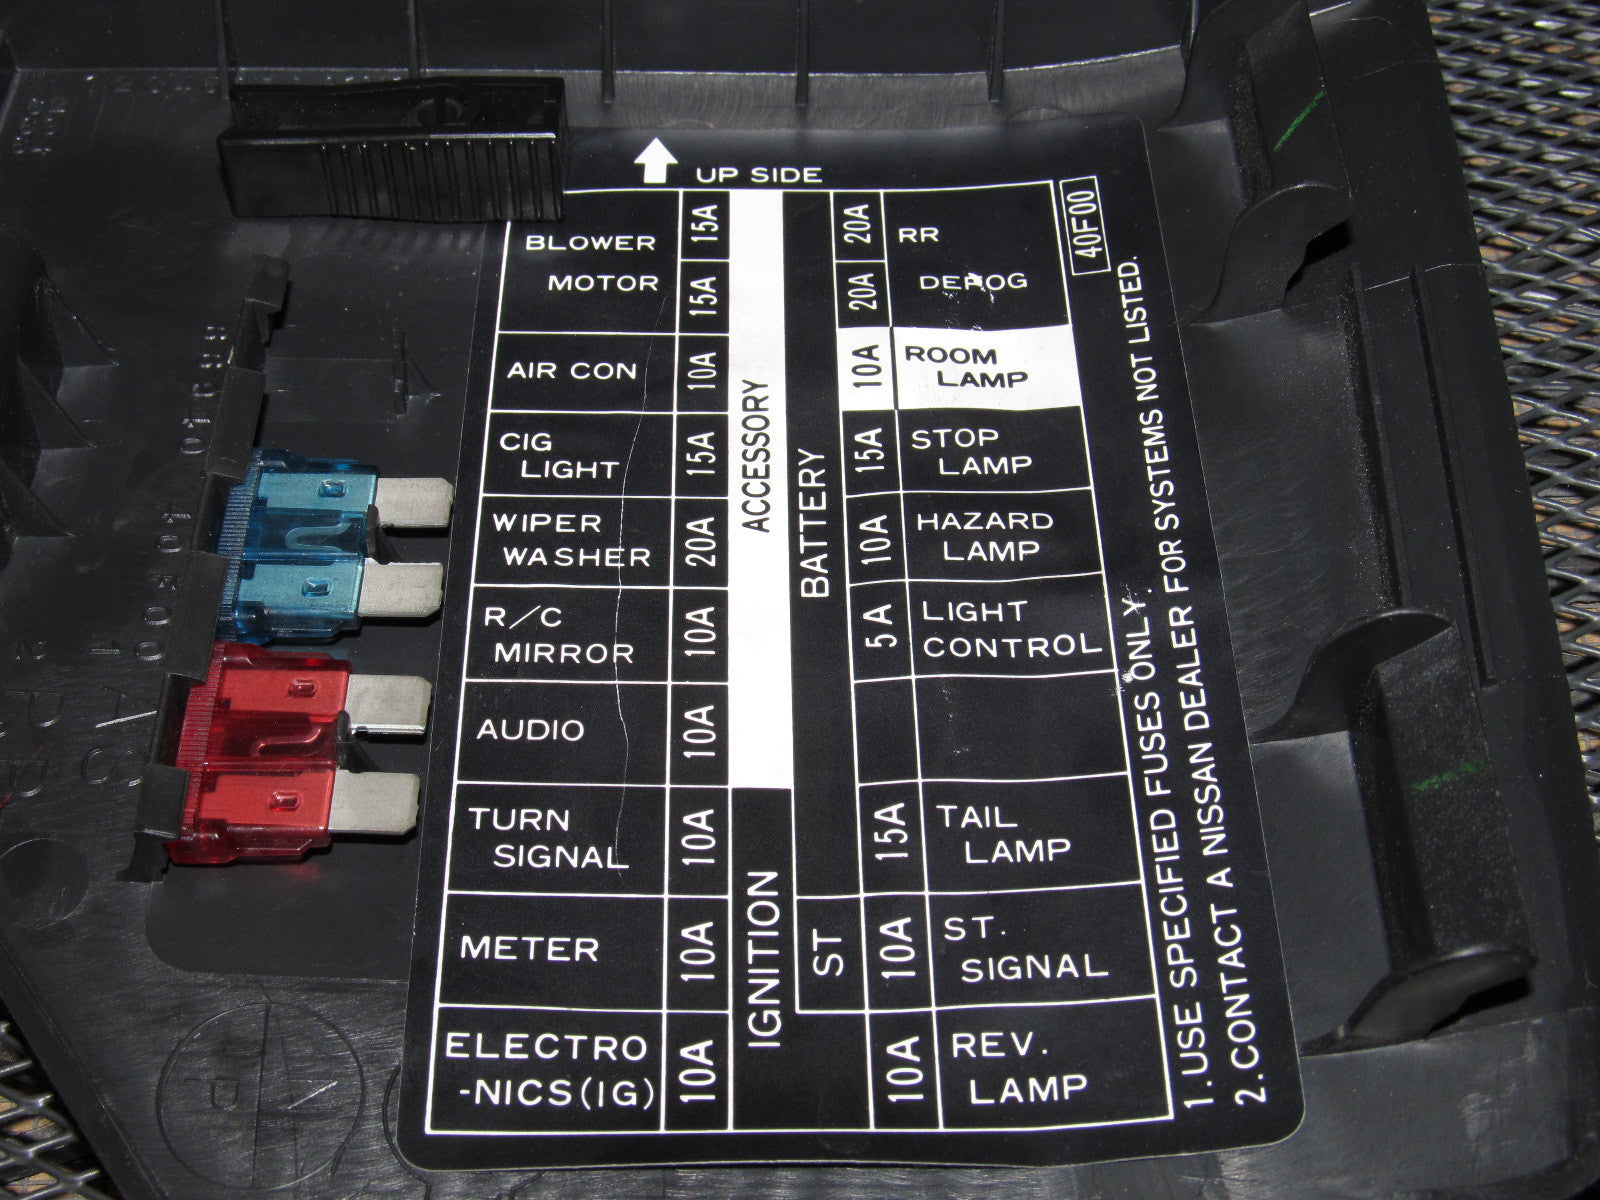 1990 Nissan 300zx Fuse Box Diagram The Portal And Forum Of Wiring Jeep Wagoneer Third Level Rh 18 4 16 Jacobwinterstein Com Toyota Camry Cherokee